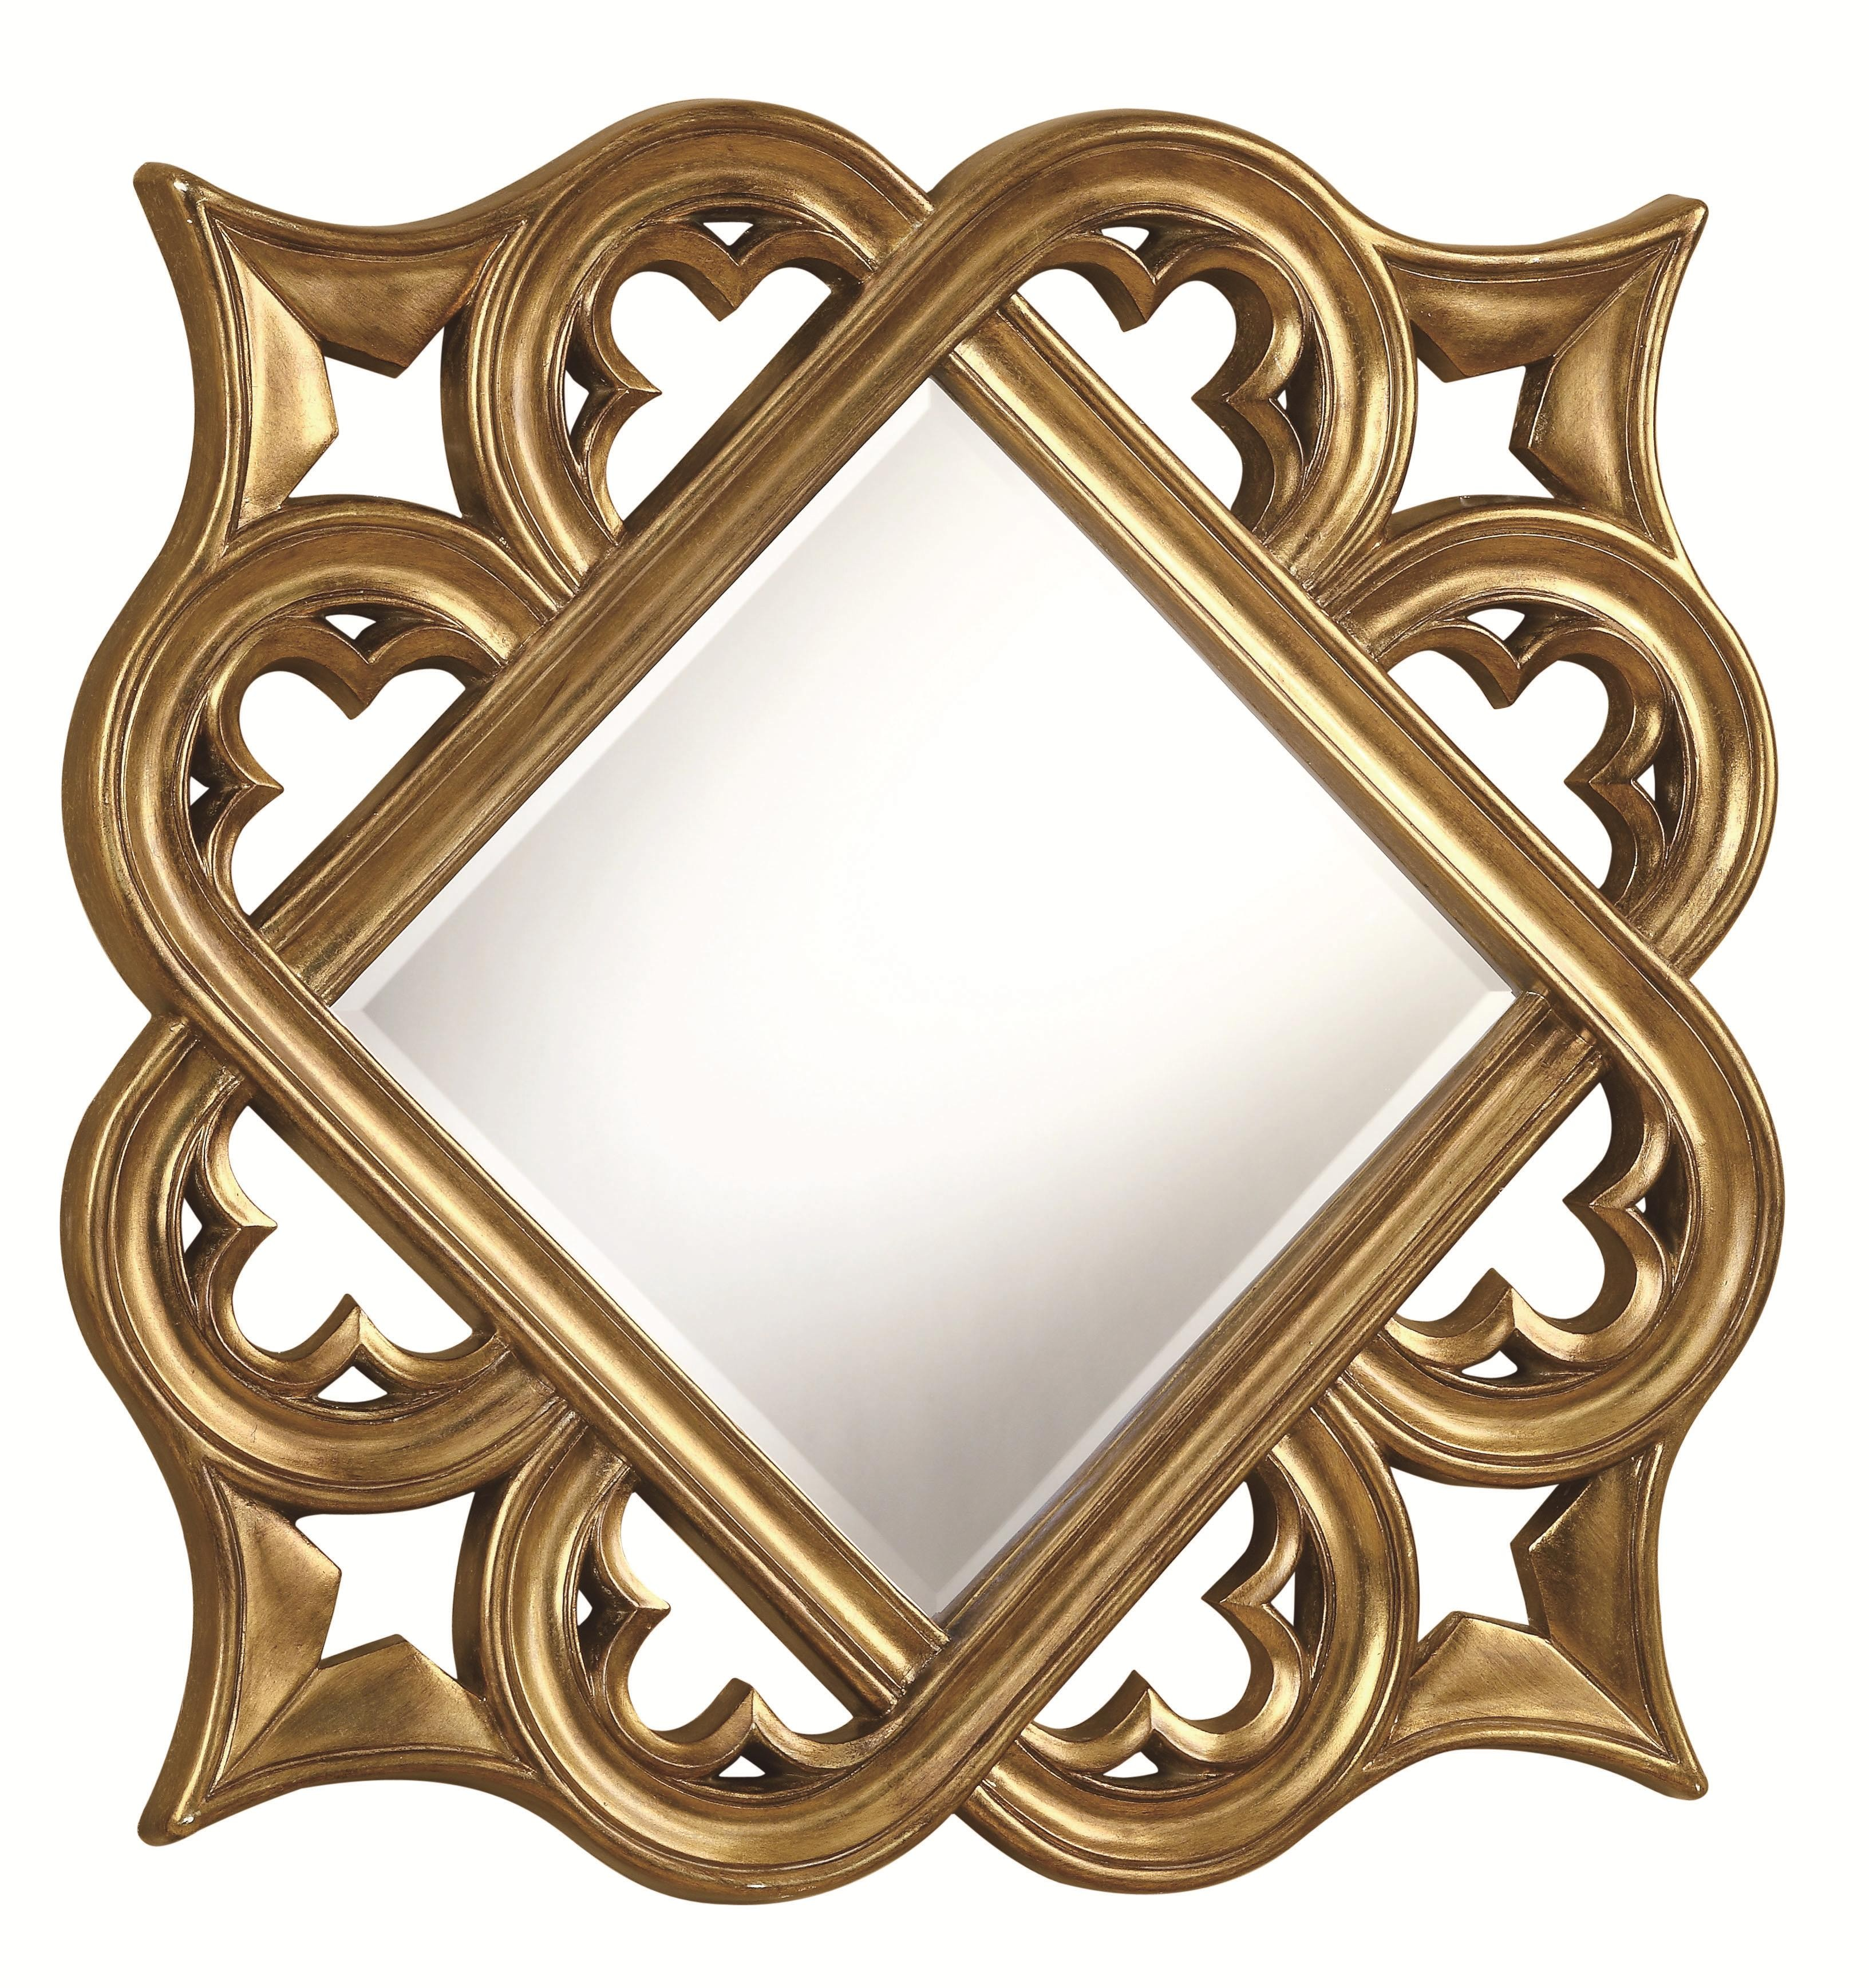 Ornate Gold Frame | Clipart Panda - Free Clipart Images